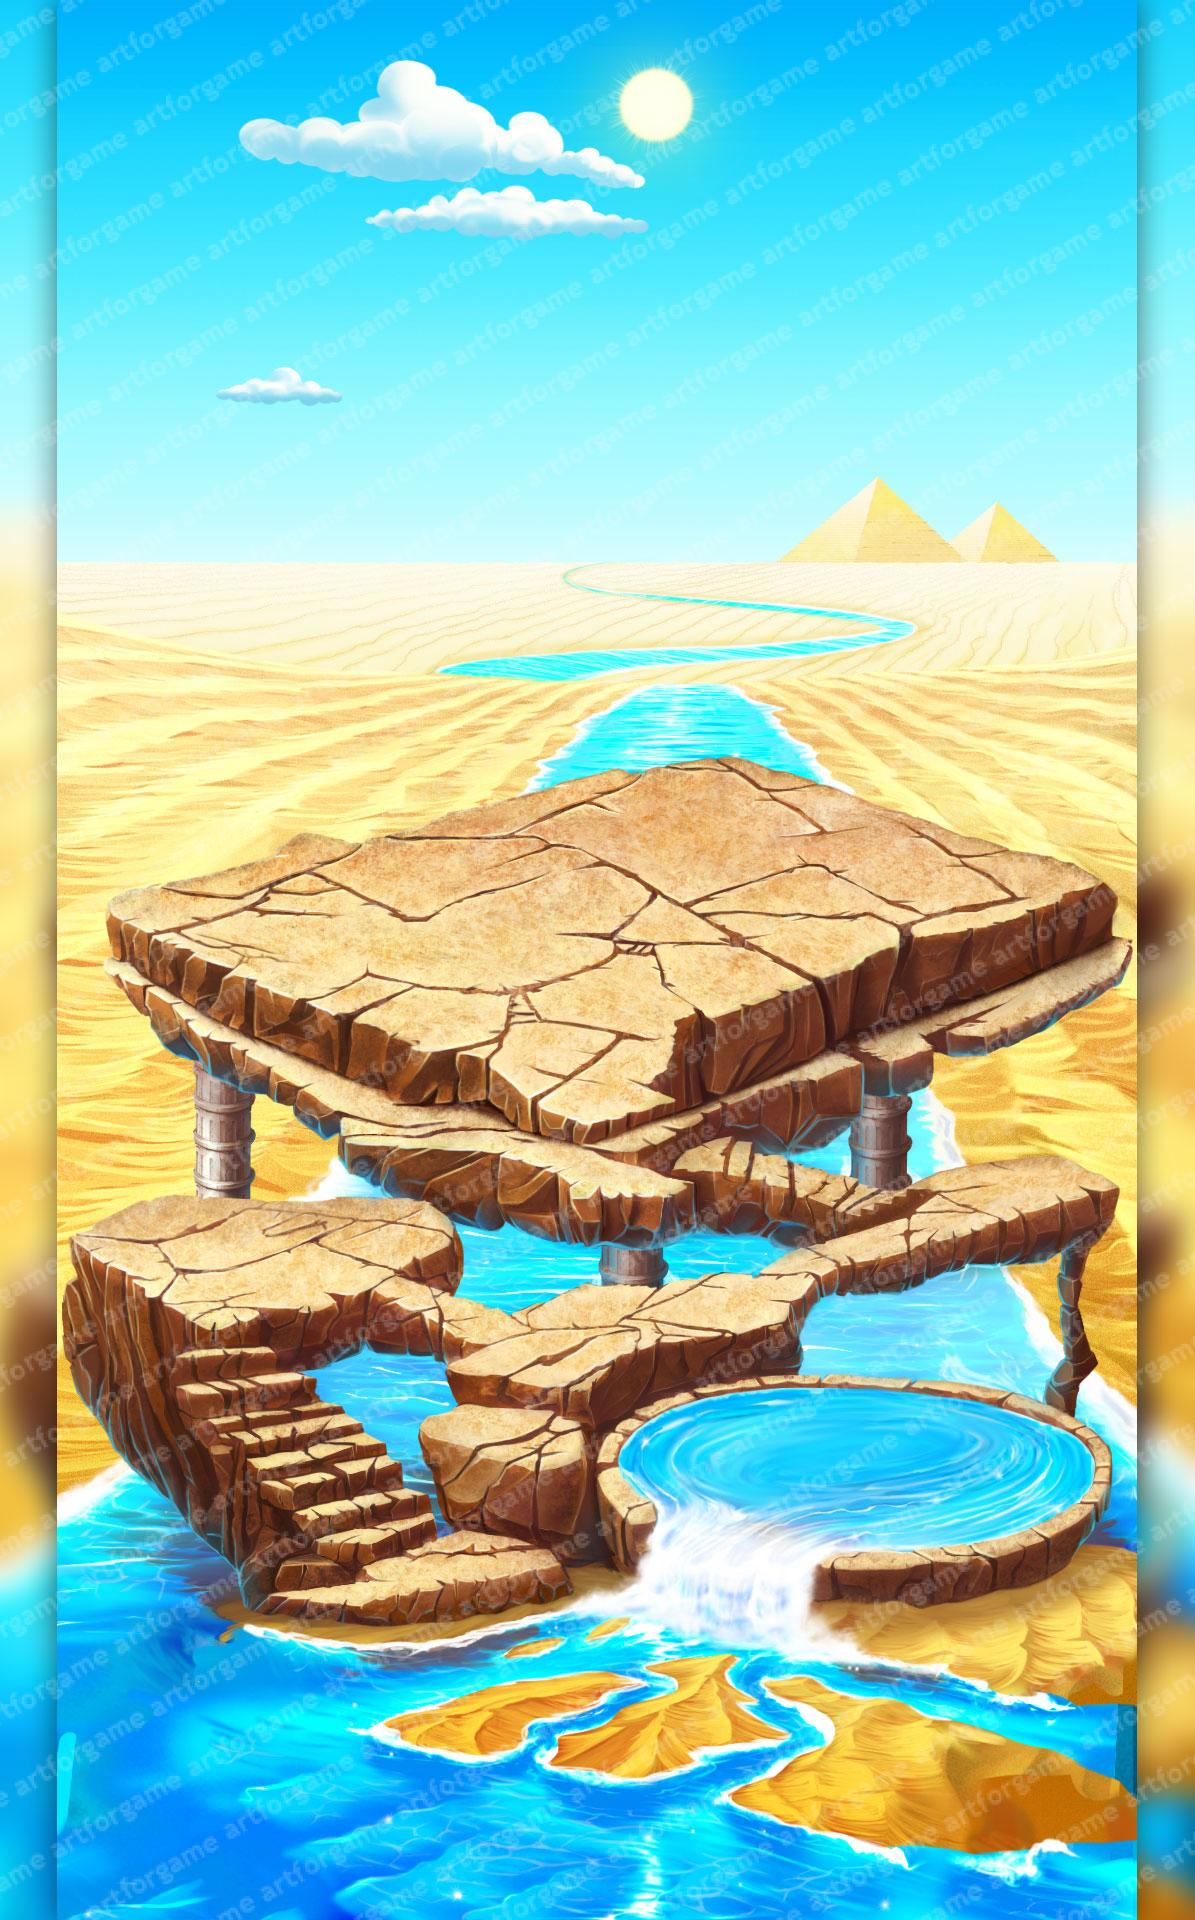 prince_of_egypt_background